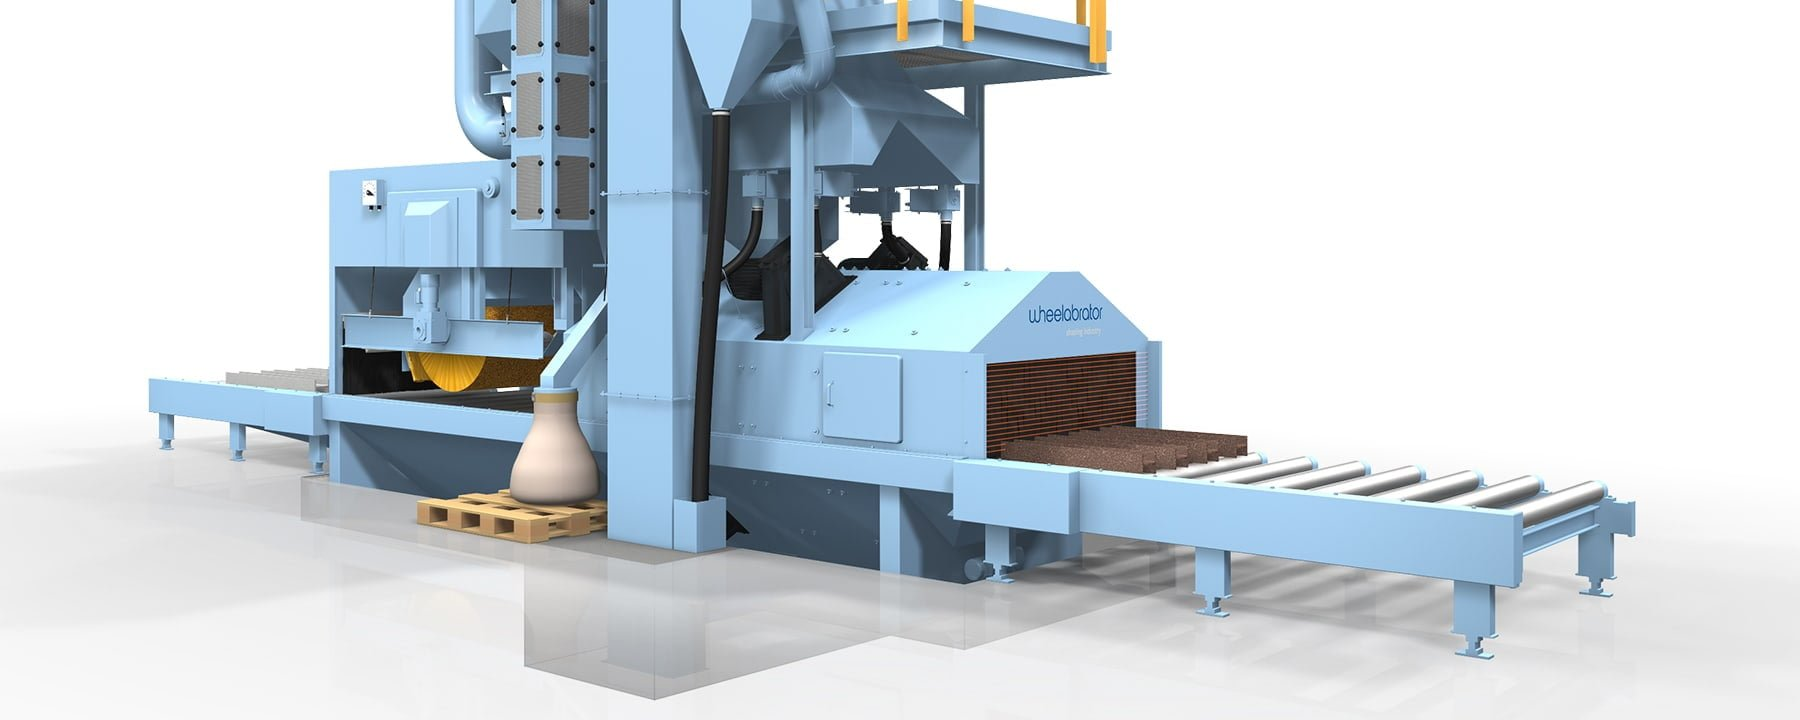 light blue wheelabrator equipment